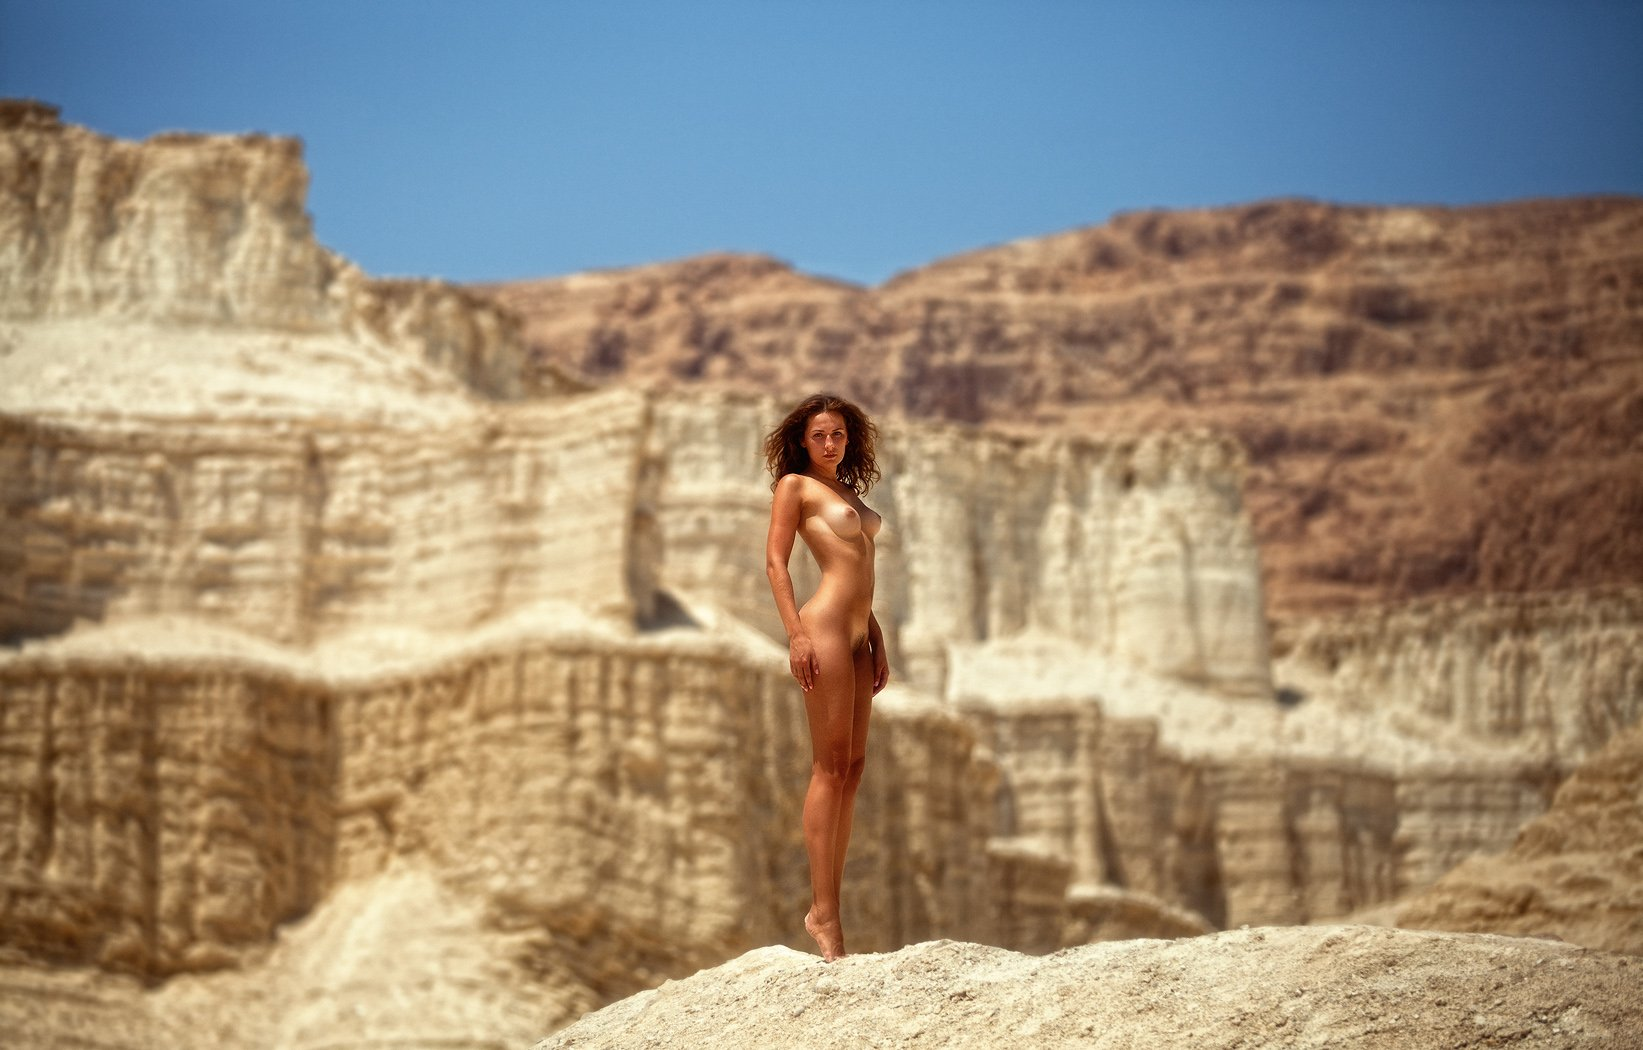 Nude in landscape photograph by ton dirven